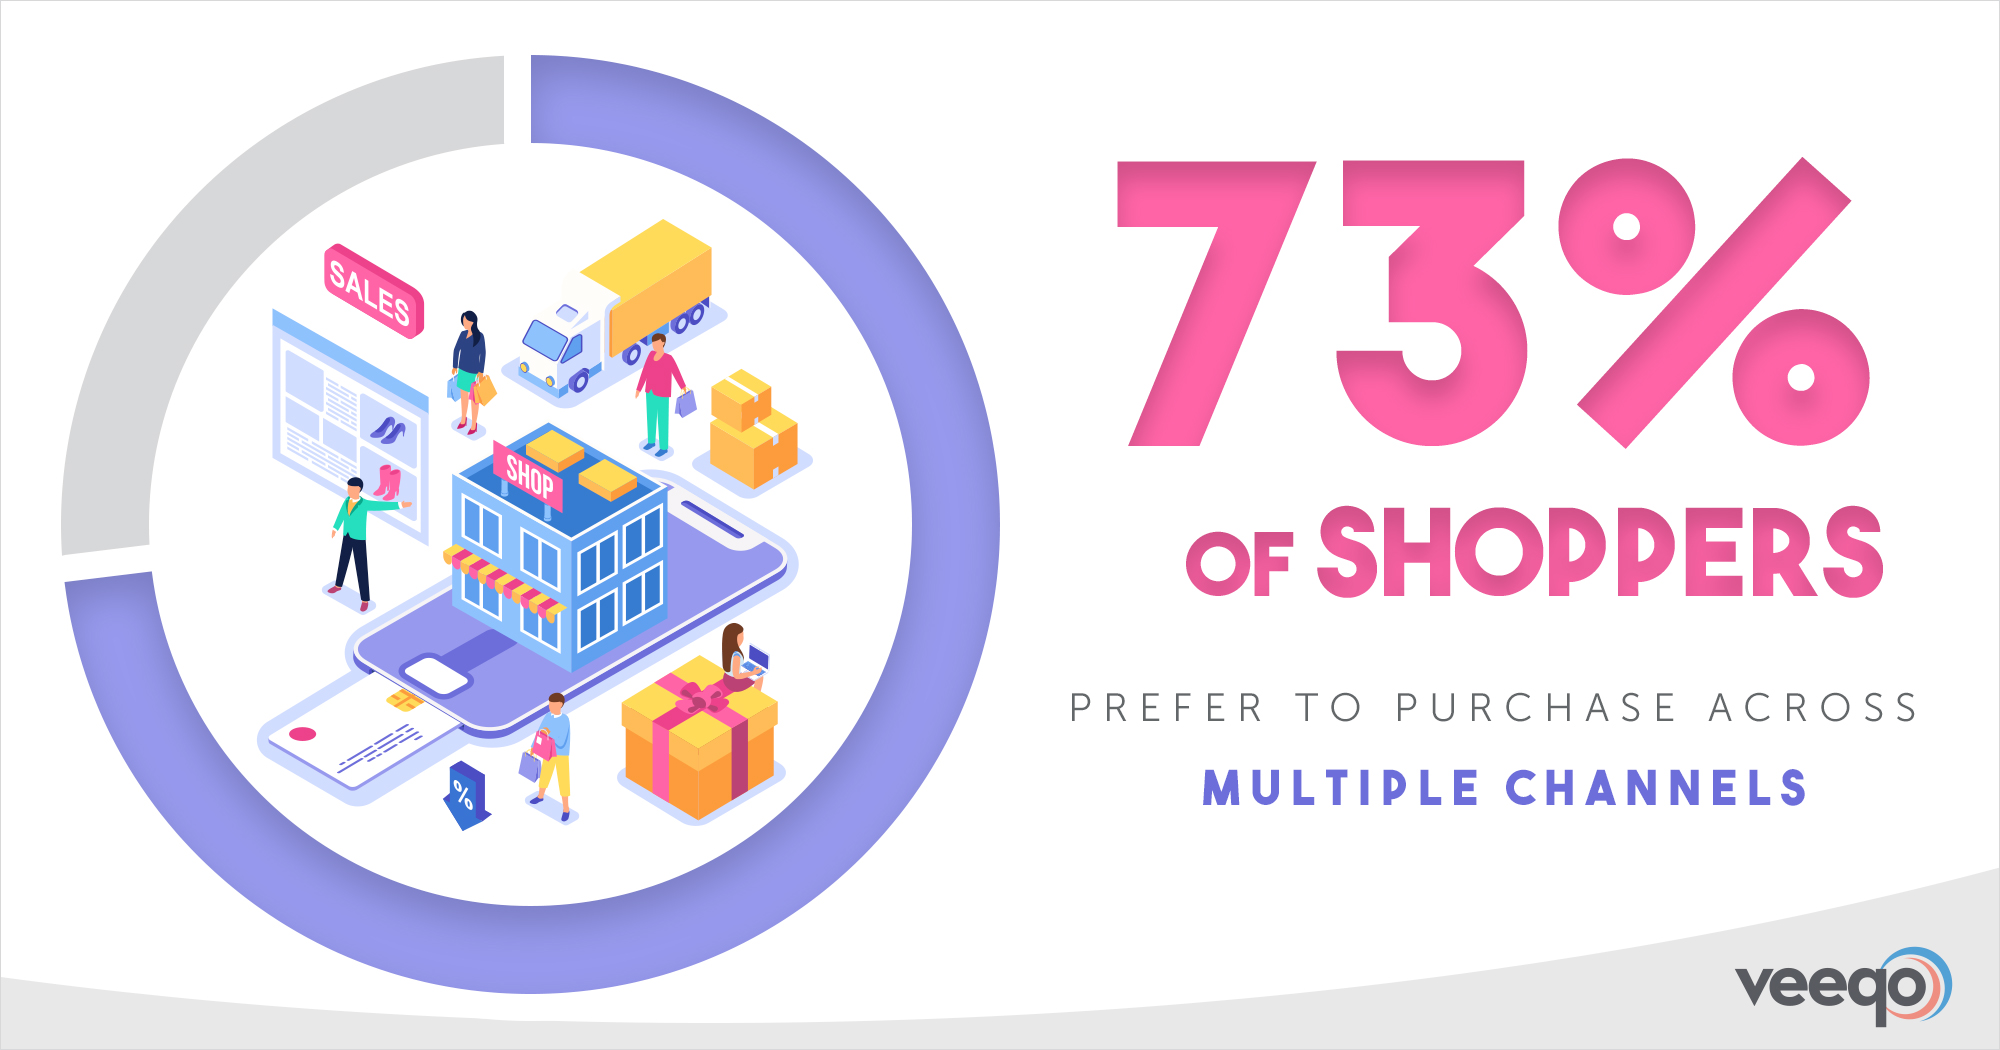 Omnichannel Strategy: 73% of shoppers prefer to purchase cross channel